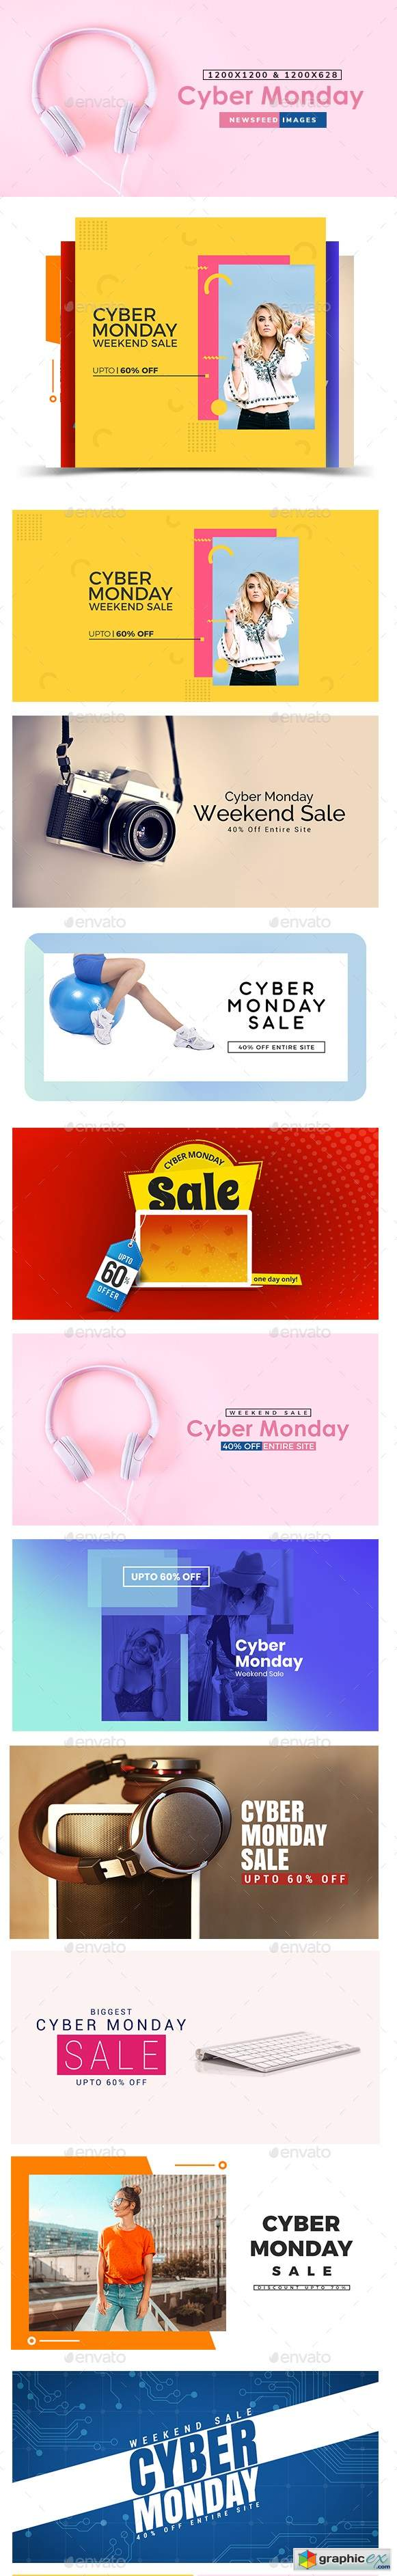 Cyber Monday Sale Facebook and Instagram Newsfeed Banners - 10 Designs